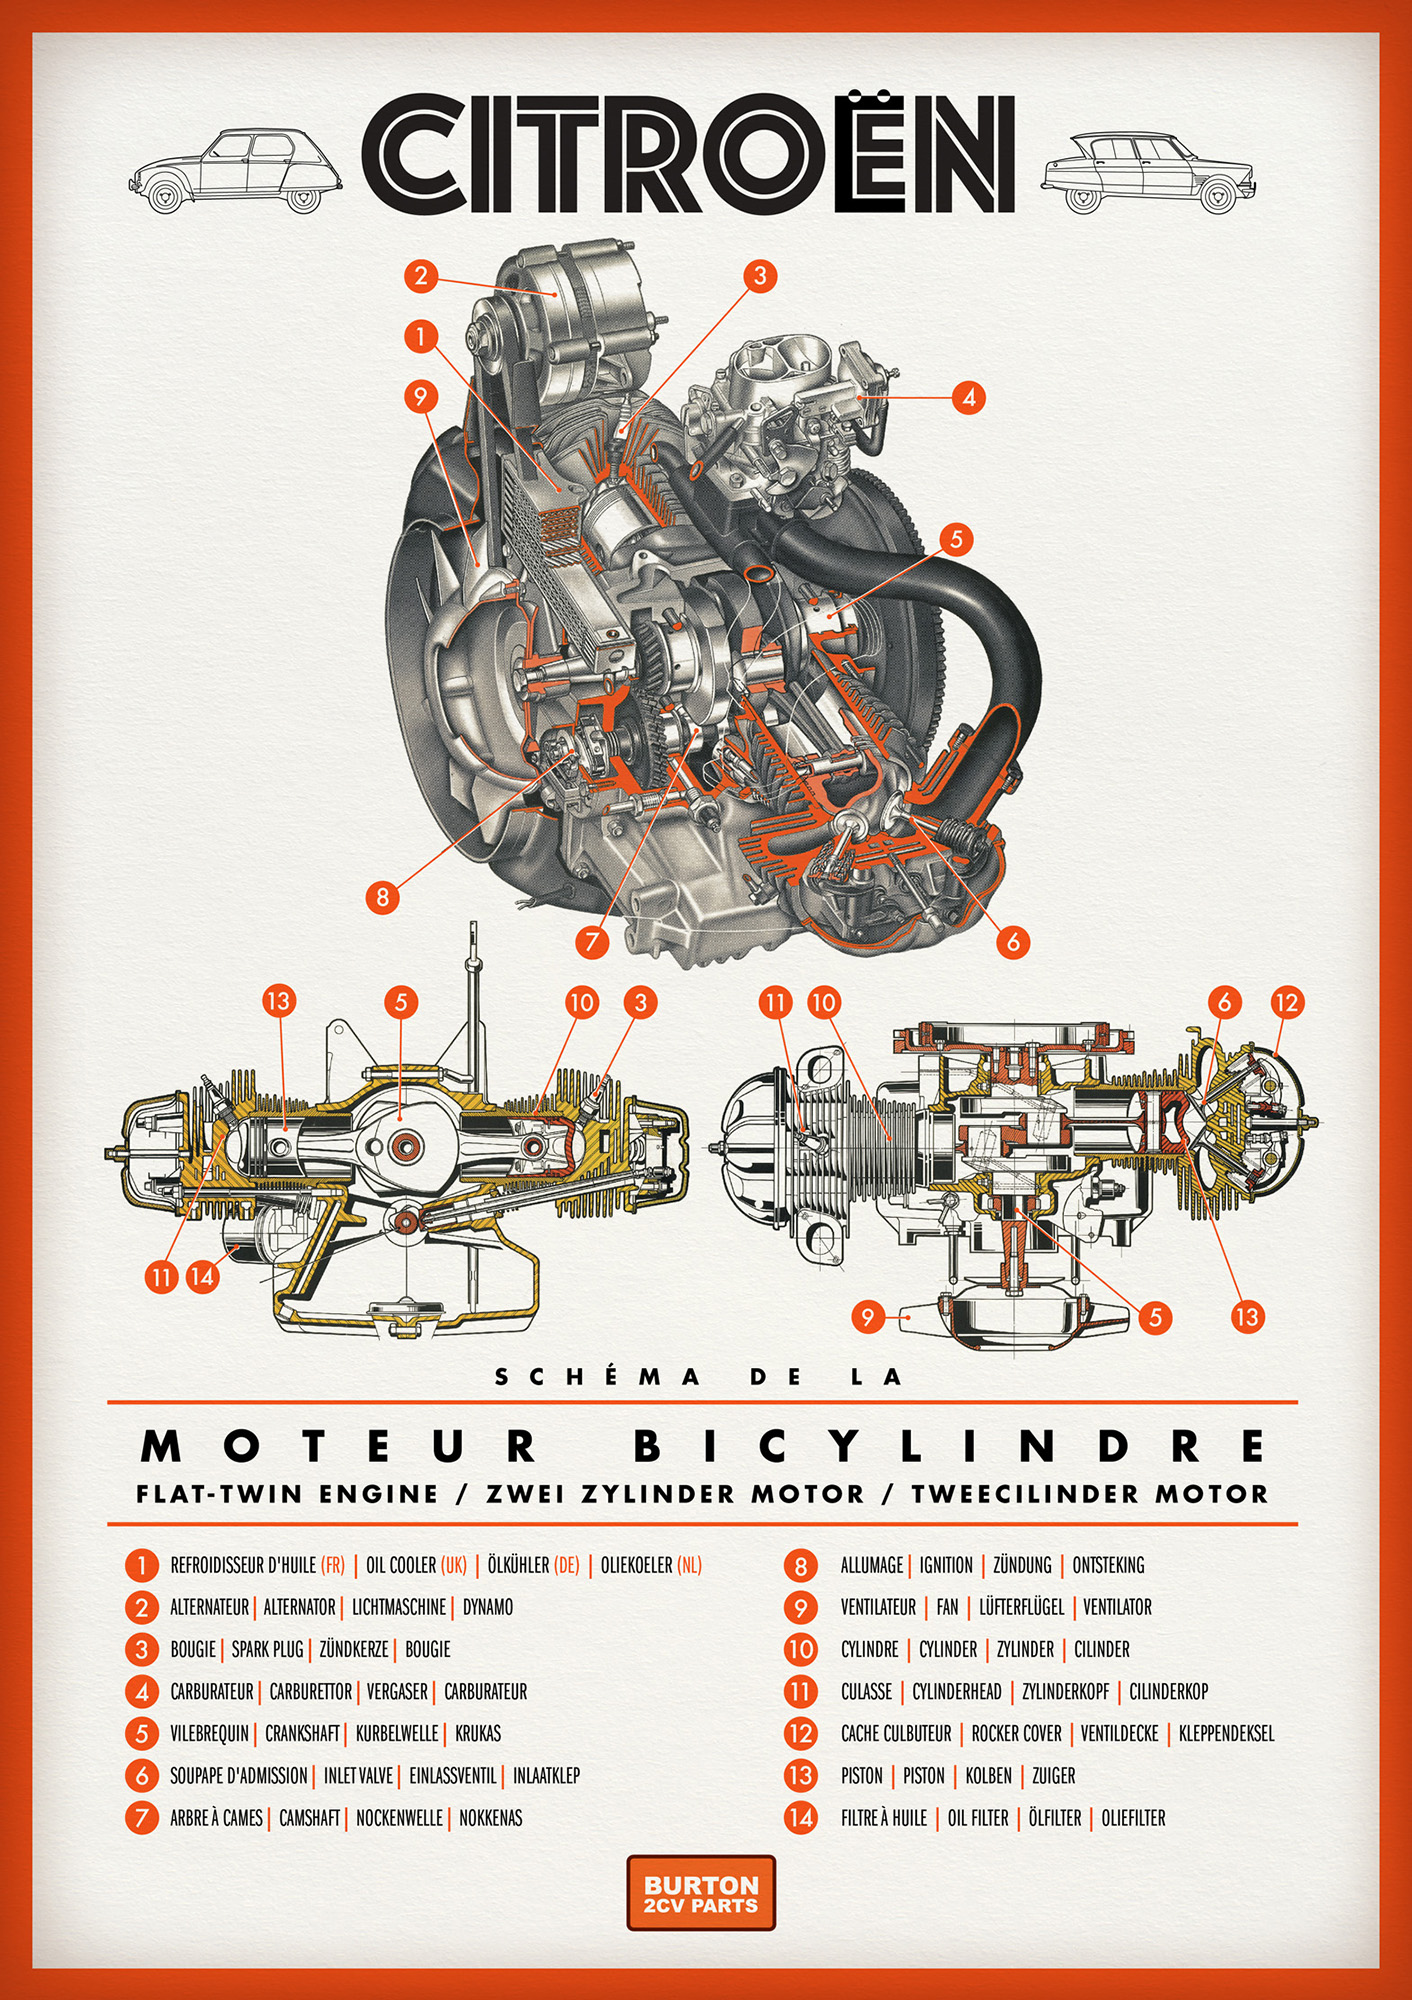 2CV poster engine for Burton